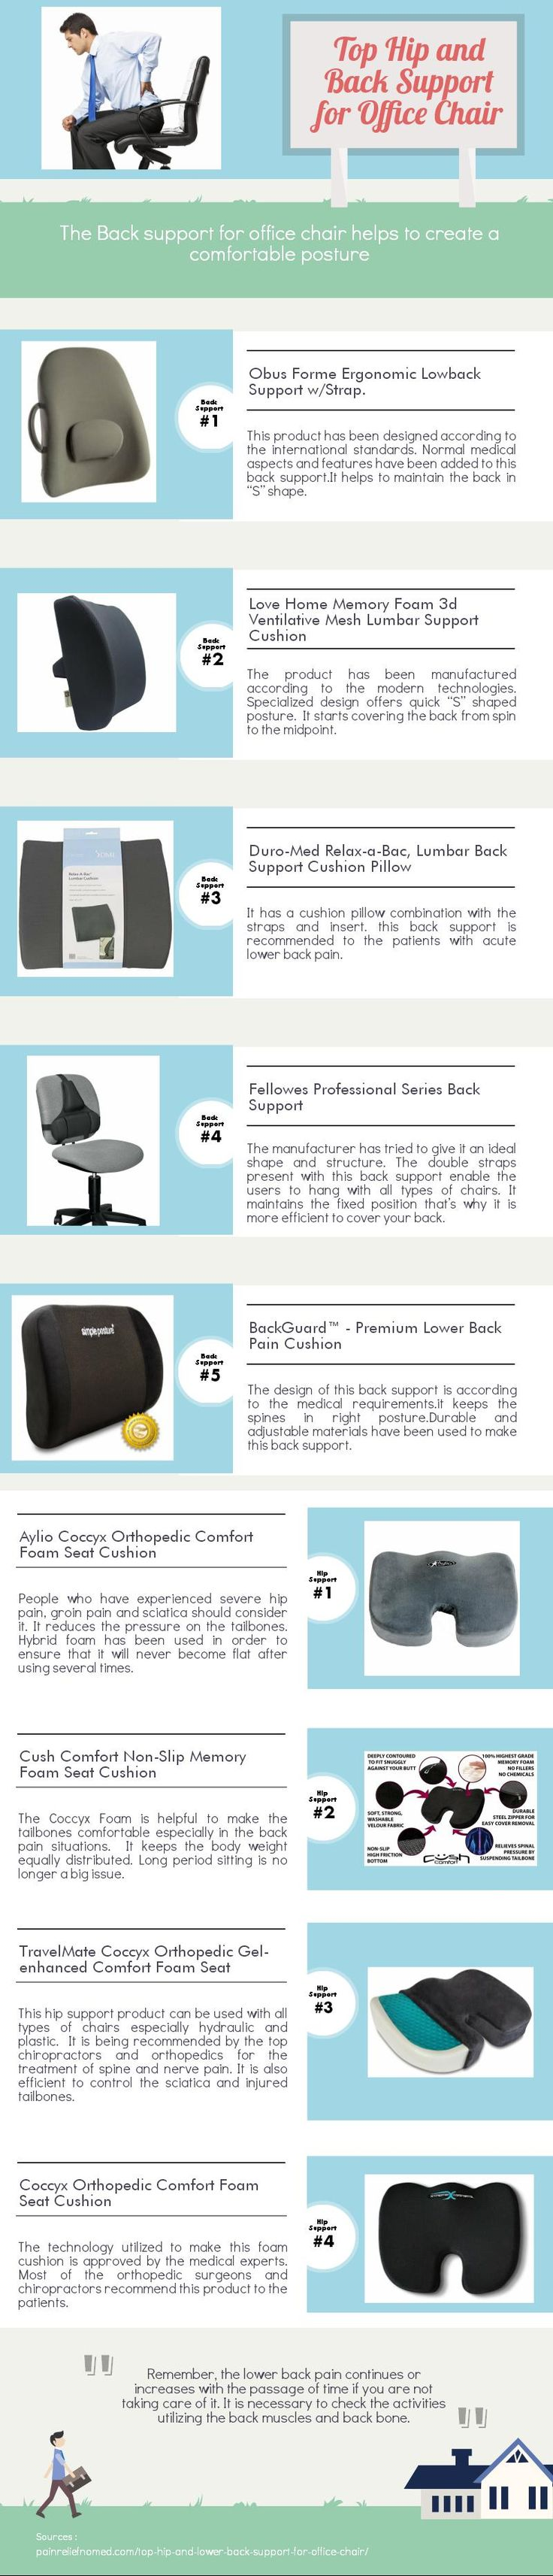 Top Hip and Back Support for Office Chair. Humans are dependent on modern lifestyles and technologies. With the passage of time, we are getting more and more dependent on the instruments, vehicles and gadgets bringing comfort in life.